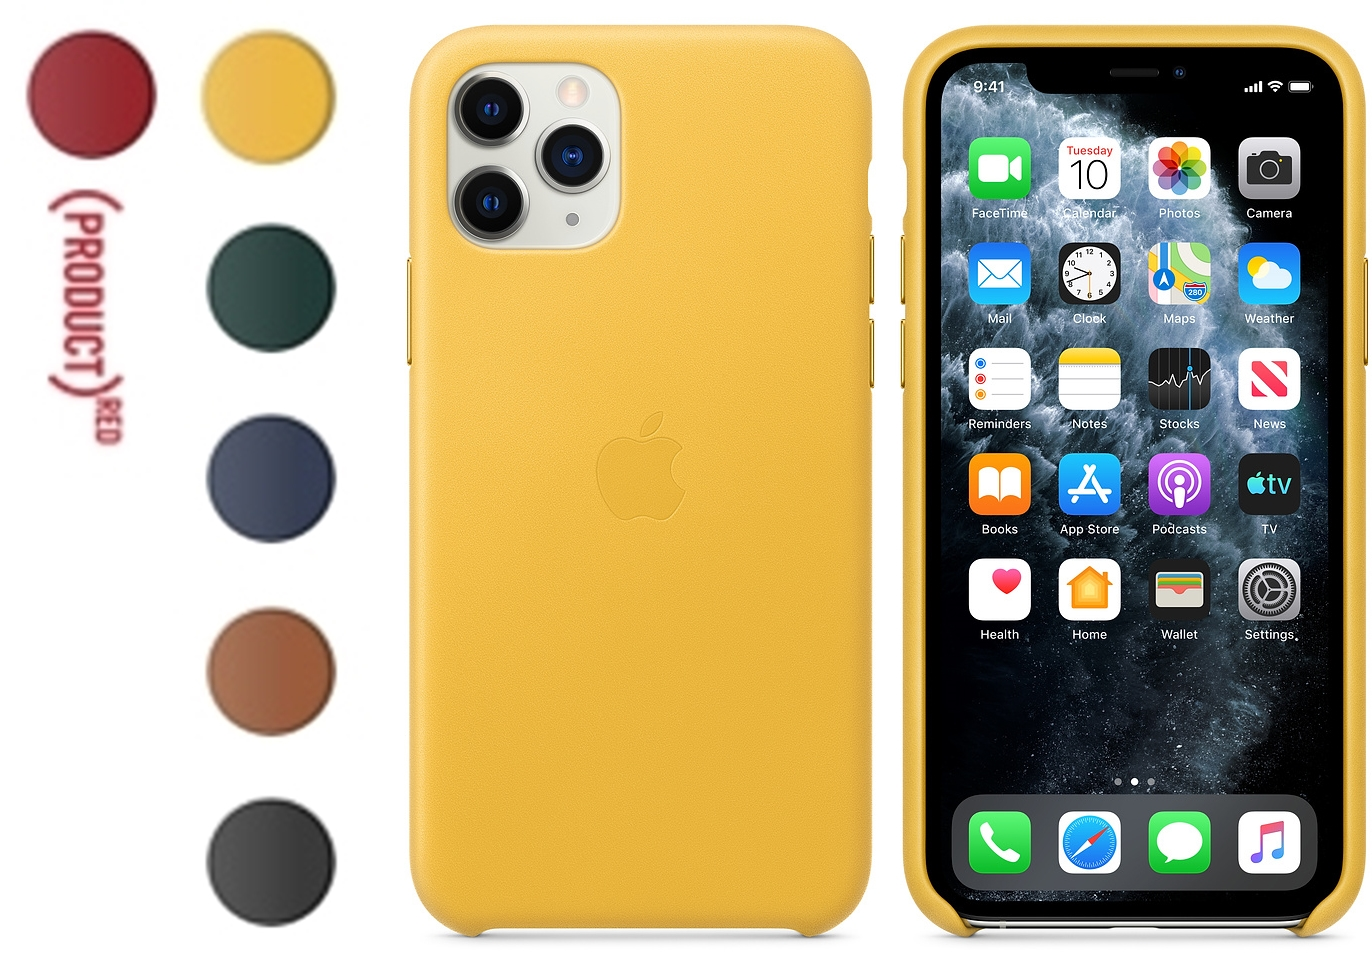 kupit_apple_leatcher_case_11_pro_v_Moskve